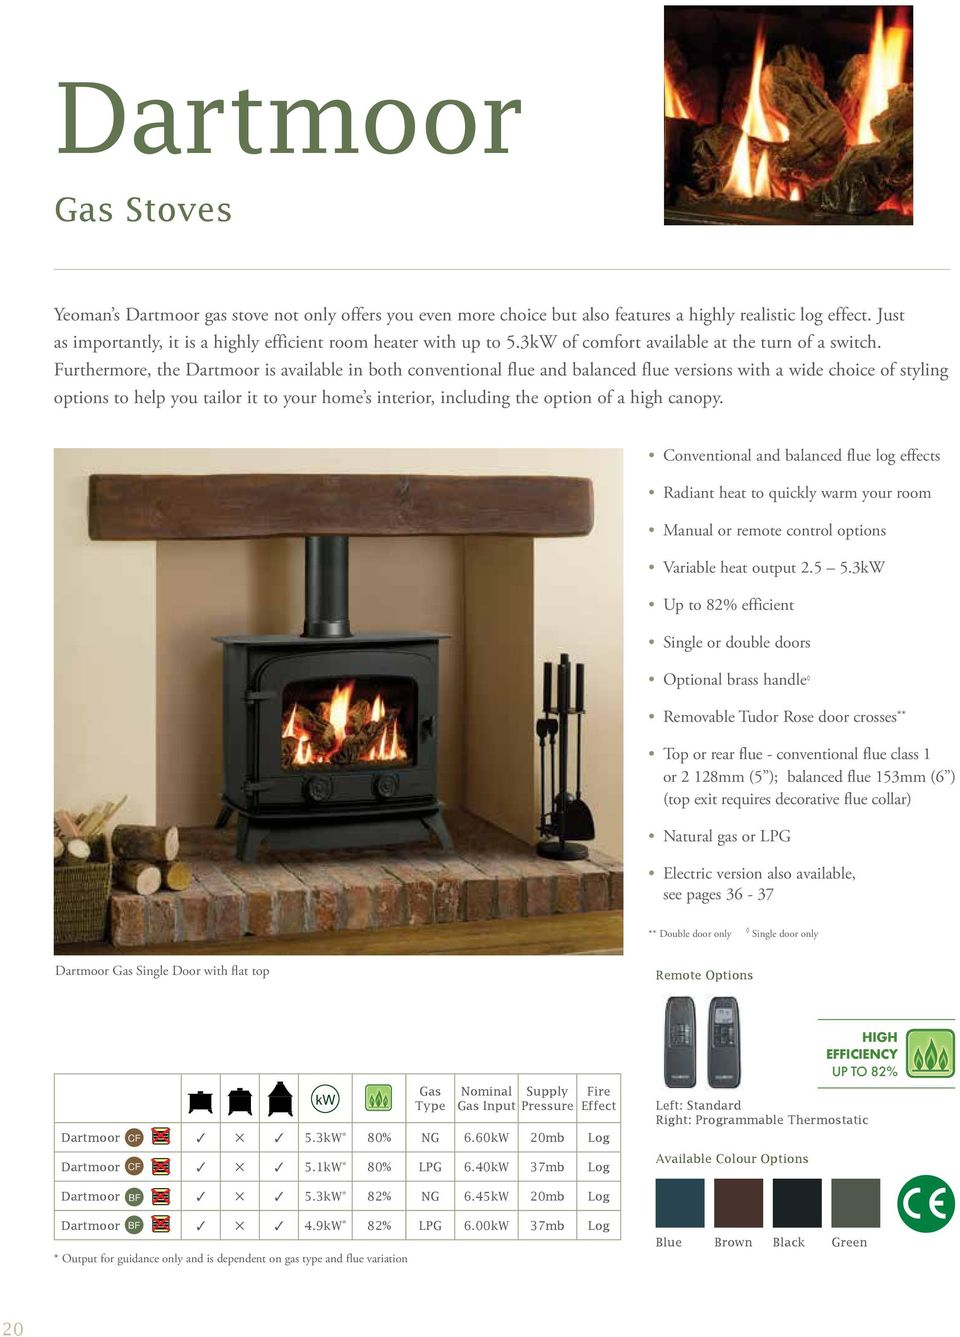 Furthermore, the Dartmoor is available in both conventional flue and balanced flue versions with a wide choice of styling options to help you tailor it to your home s interior, including the option